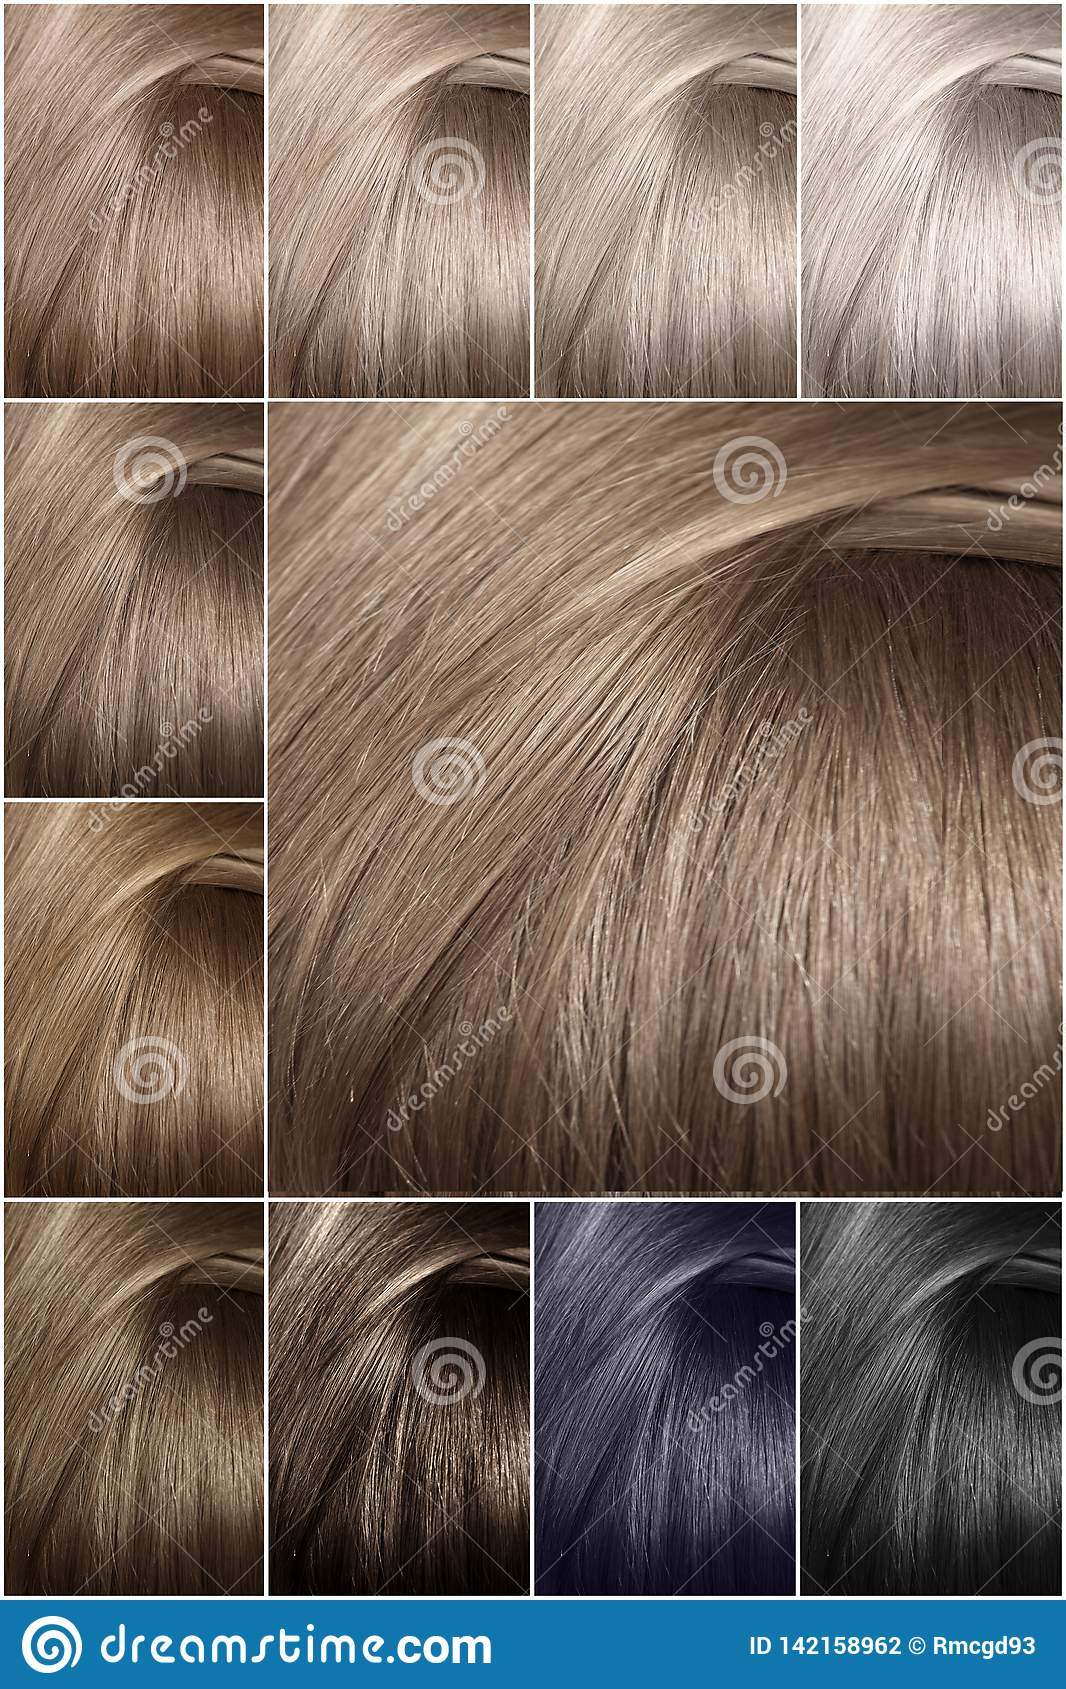 Hair Color Palette With A Wide Range Of Samples. Samples Of Colored ...